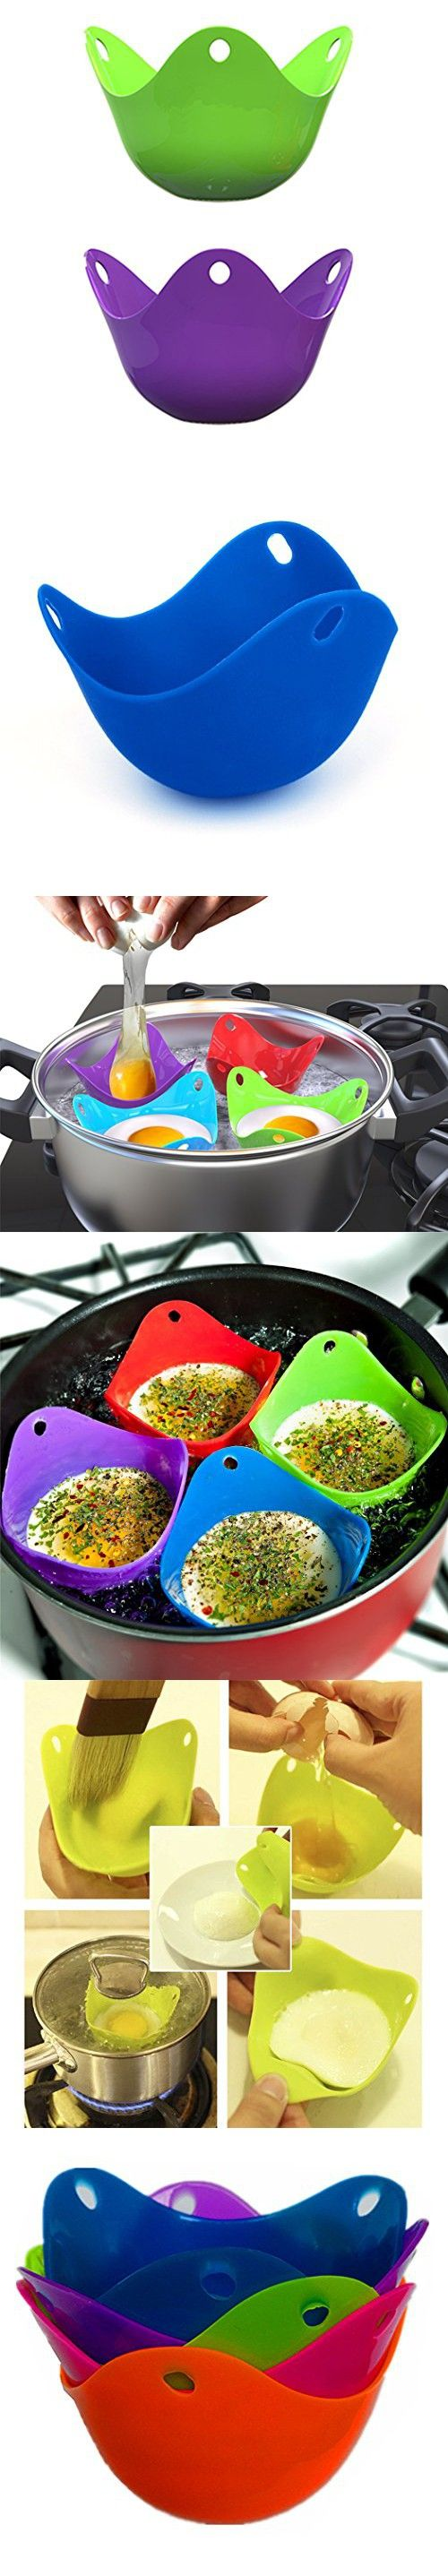 Silicone Egg Poacher 5 in 1 Egg Cookware Cups in Tin Box Packing